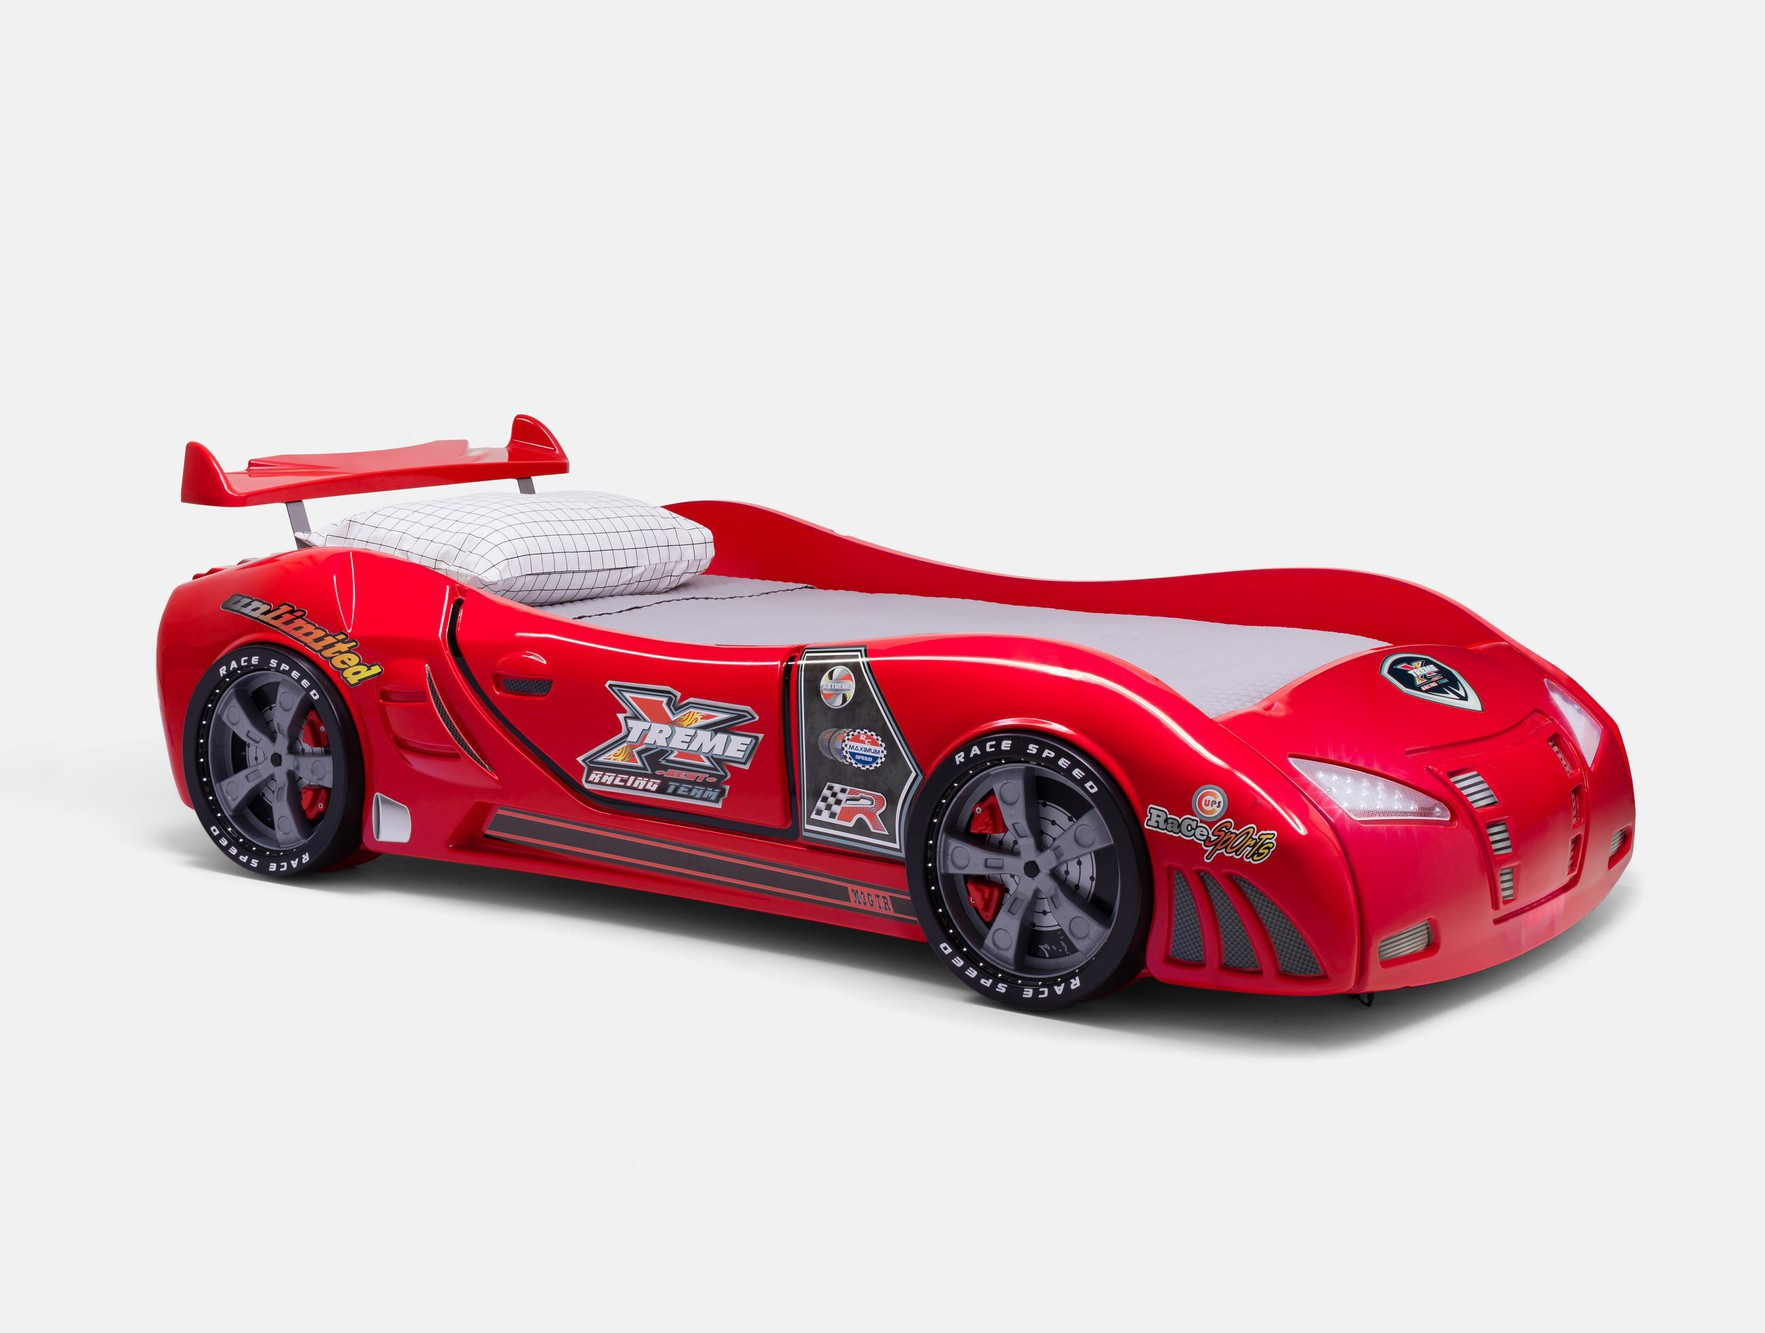 The Racecar Bed Gems From Gems A24 Auctions